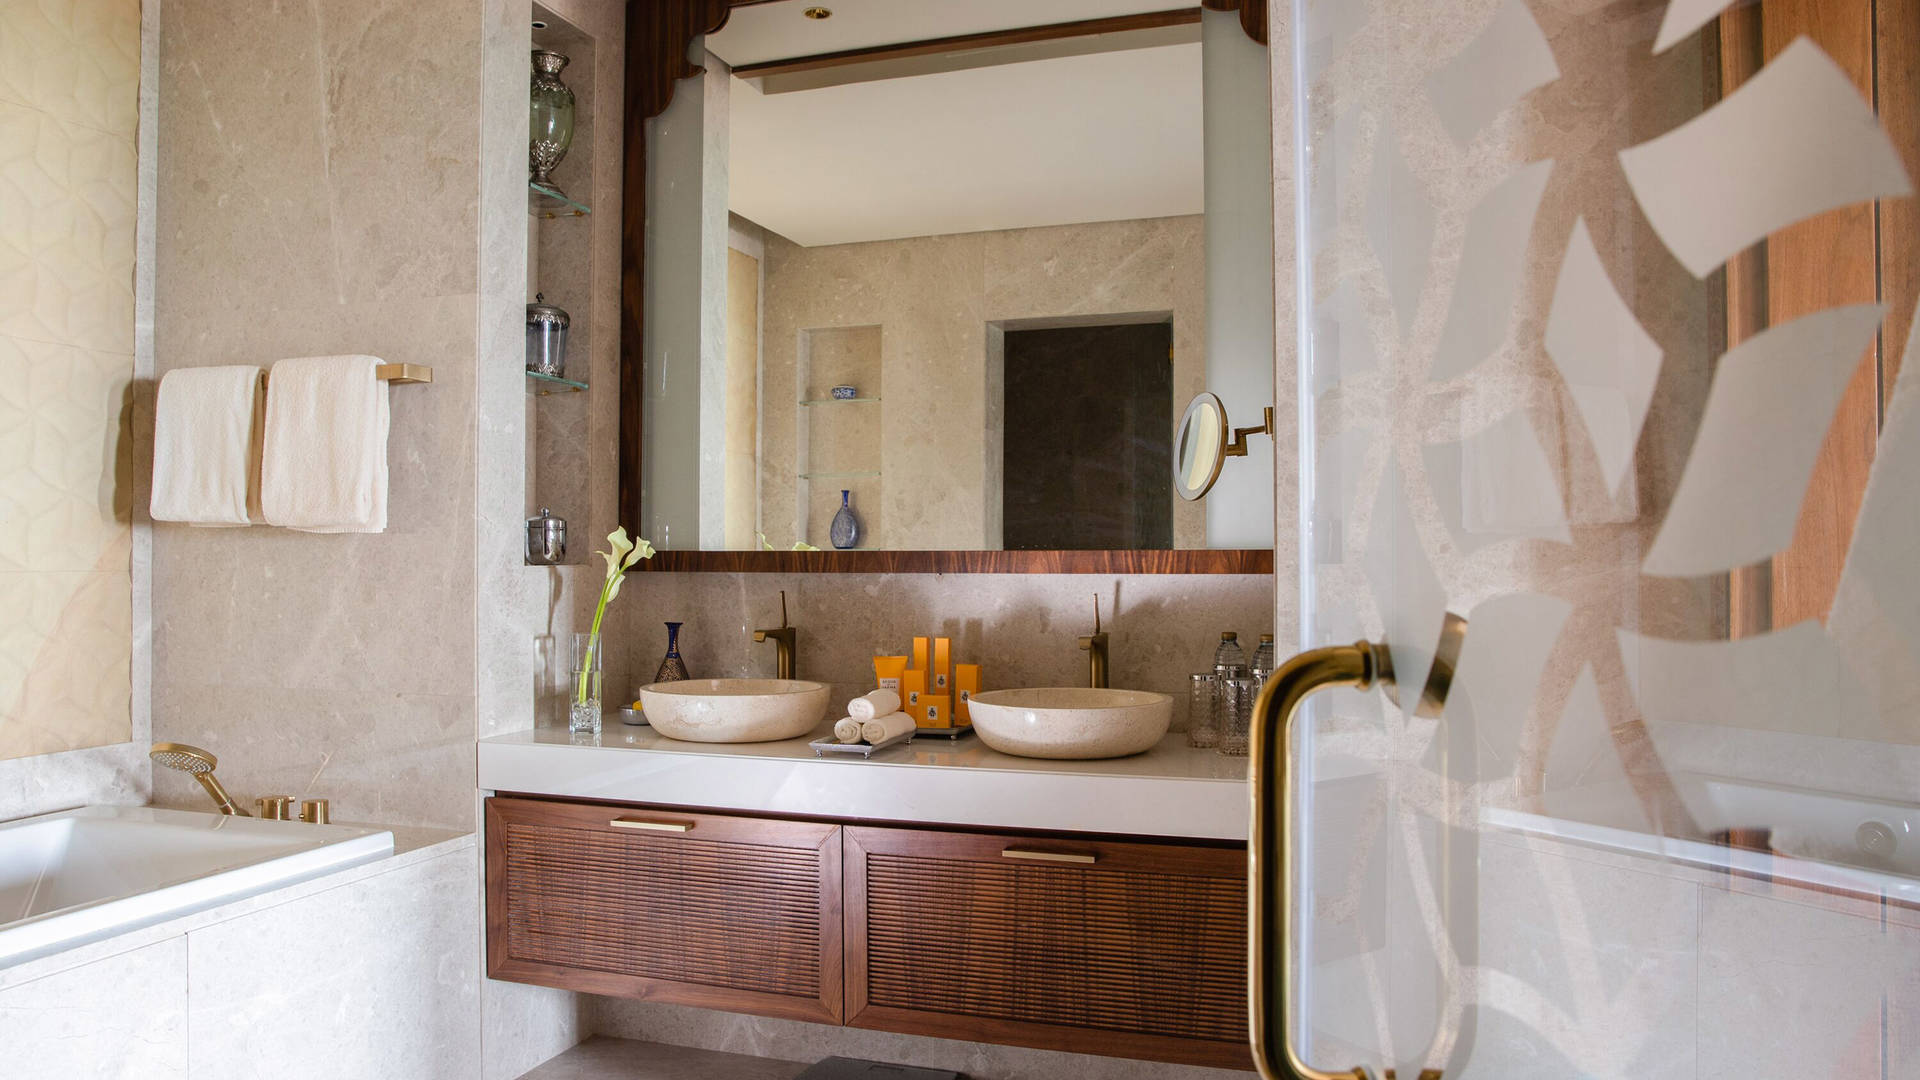 Presidential-Suite-Bathroom at Jumeirah Al Qasr